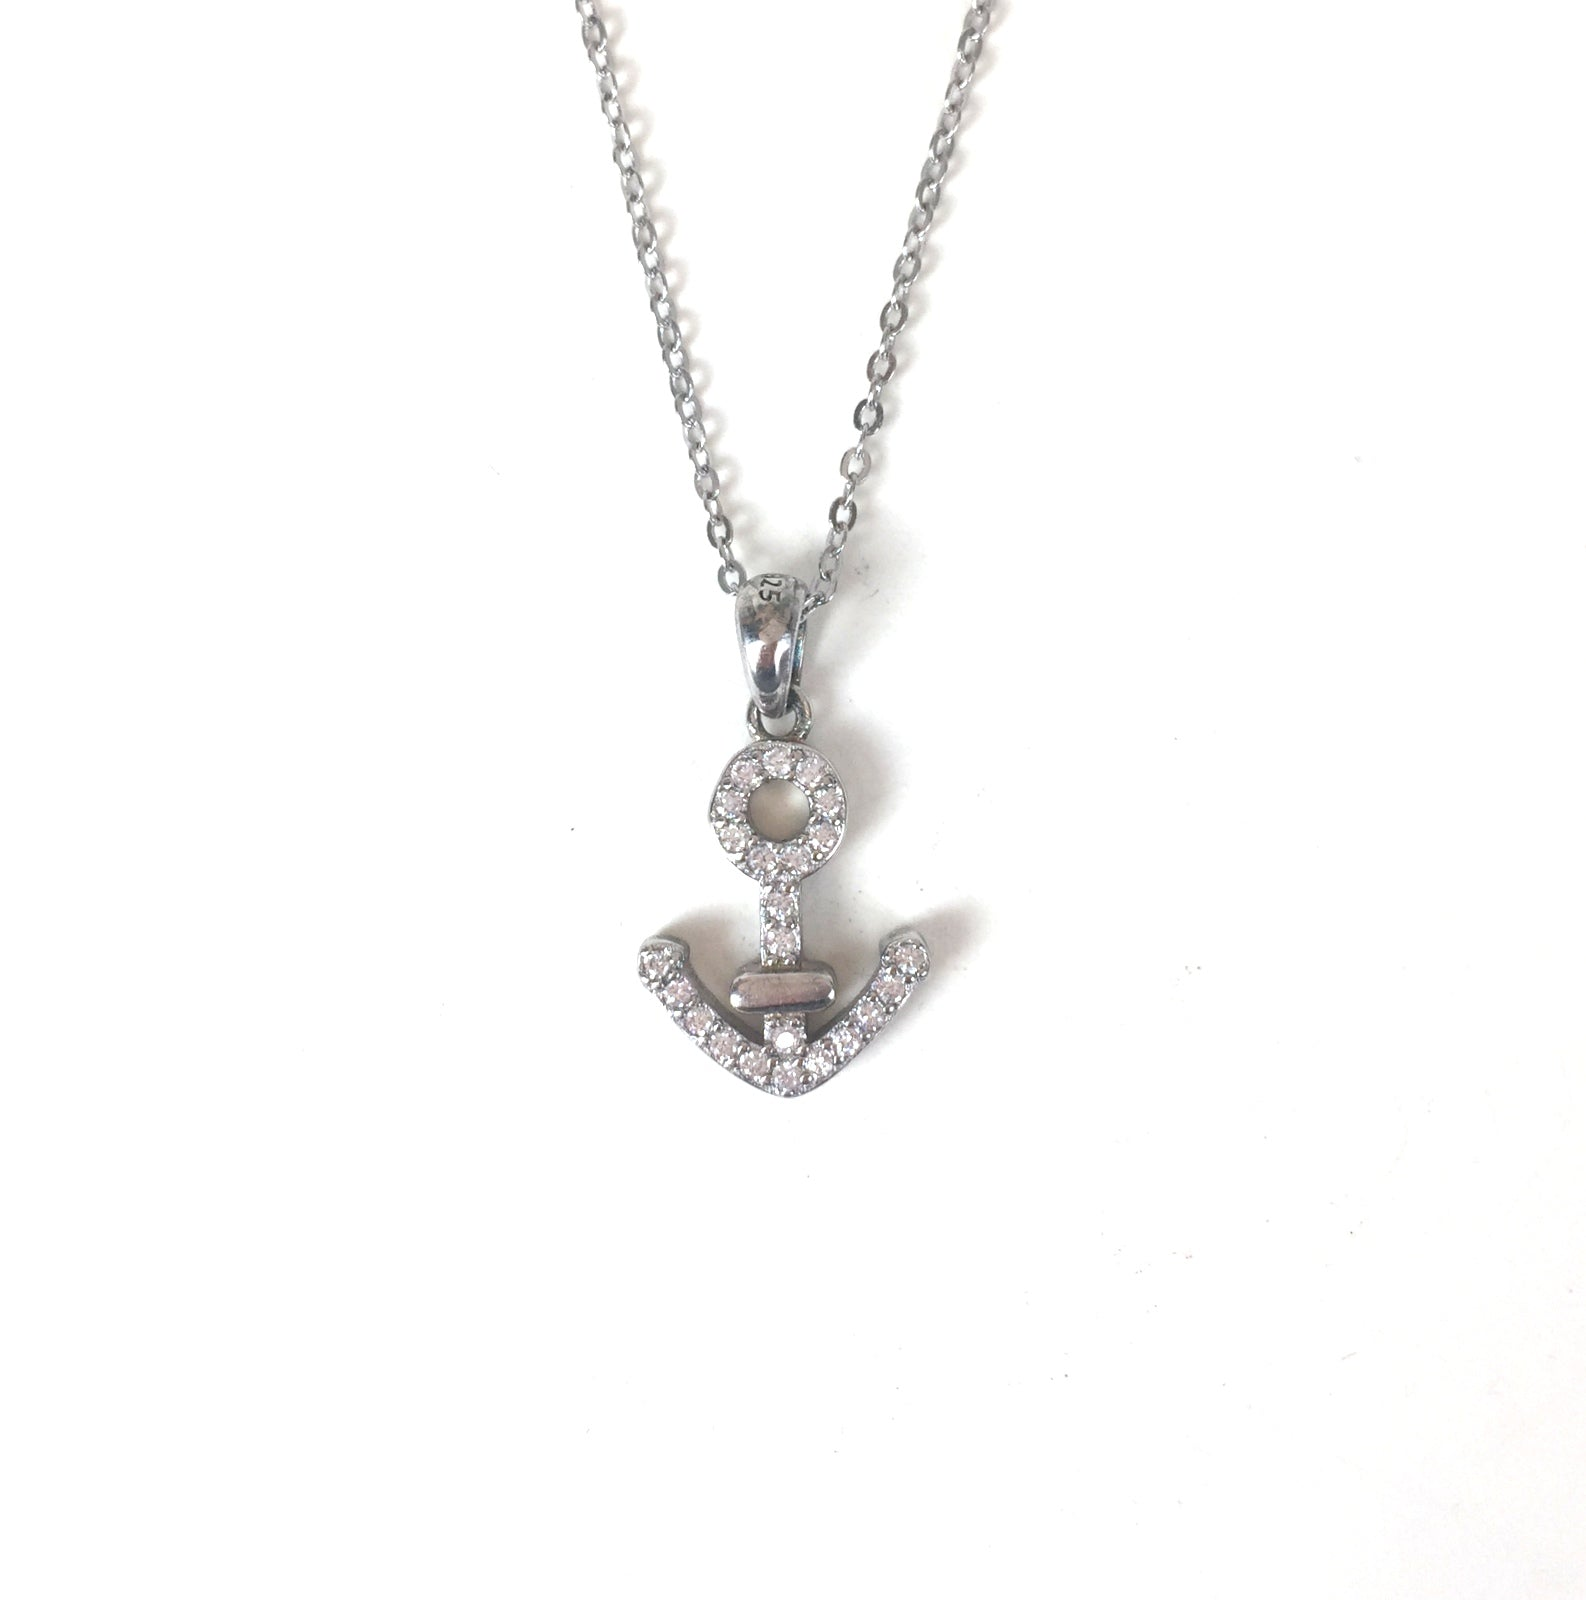 SPARKLING ANCHOR PAVE CZ STERLING SILVER NECKLACE